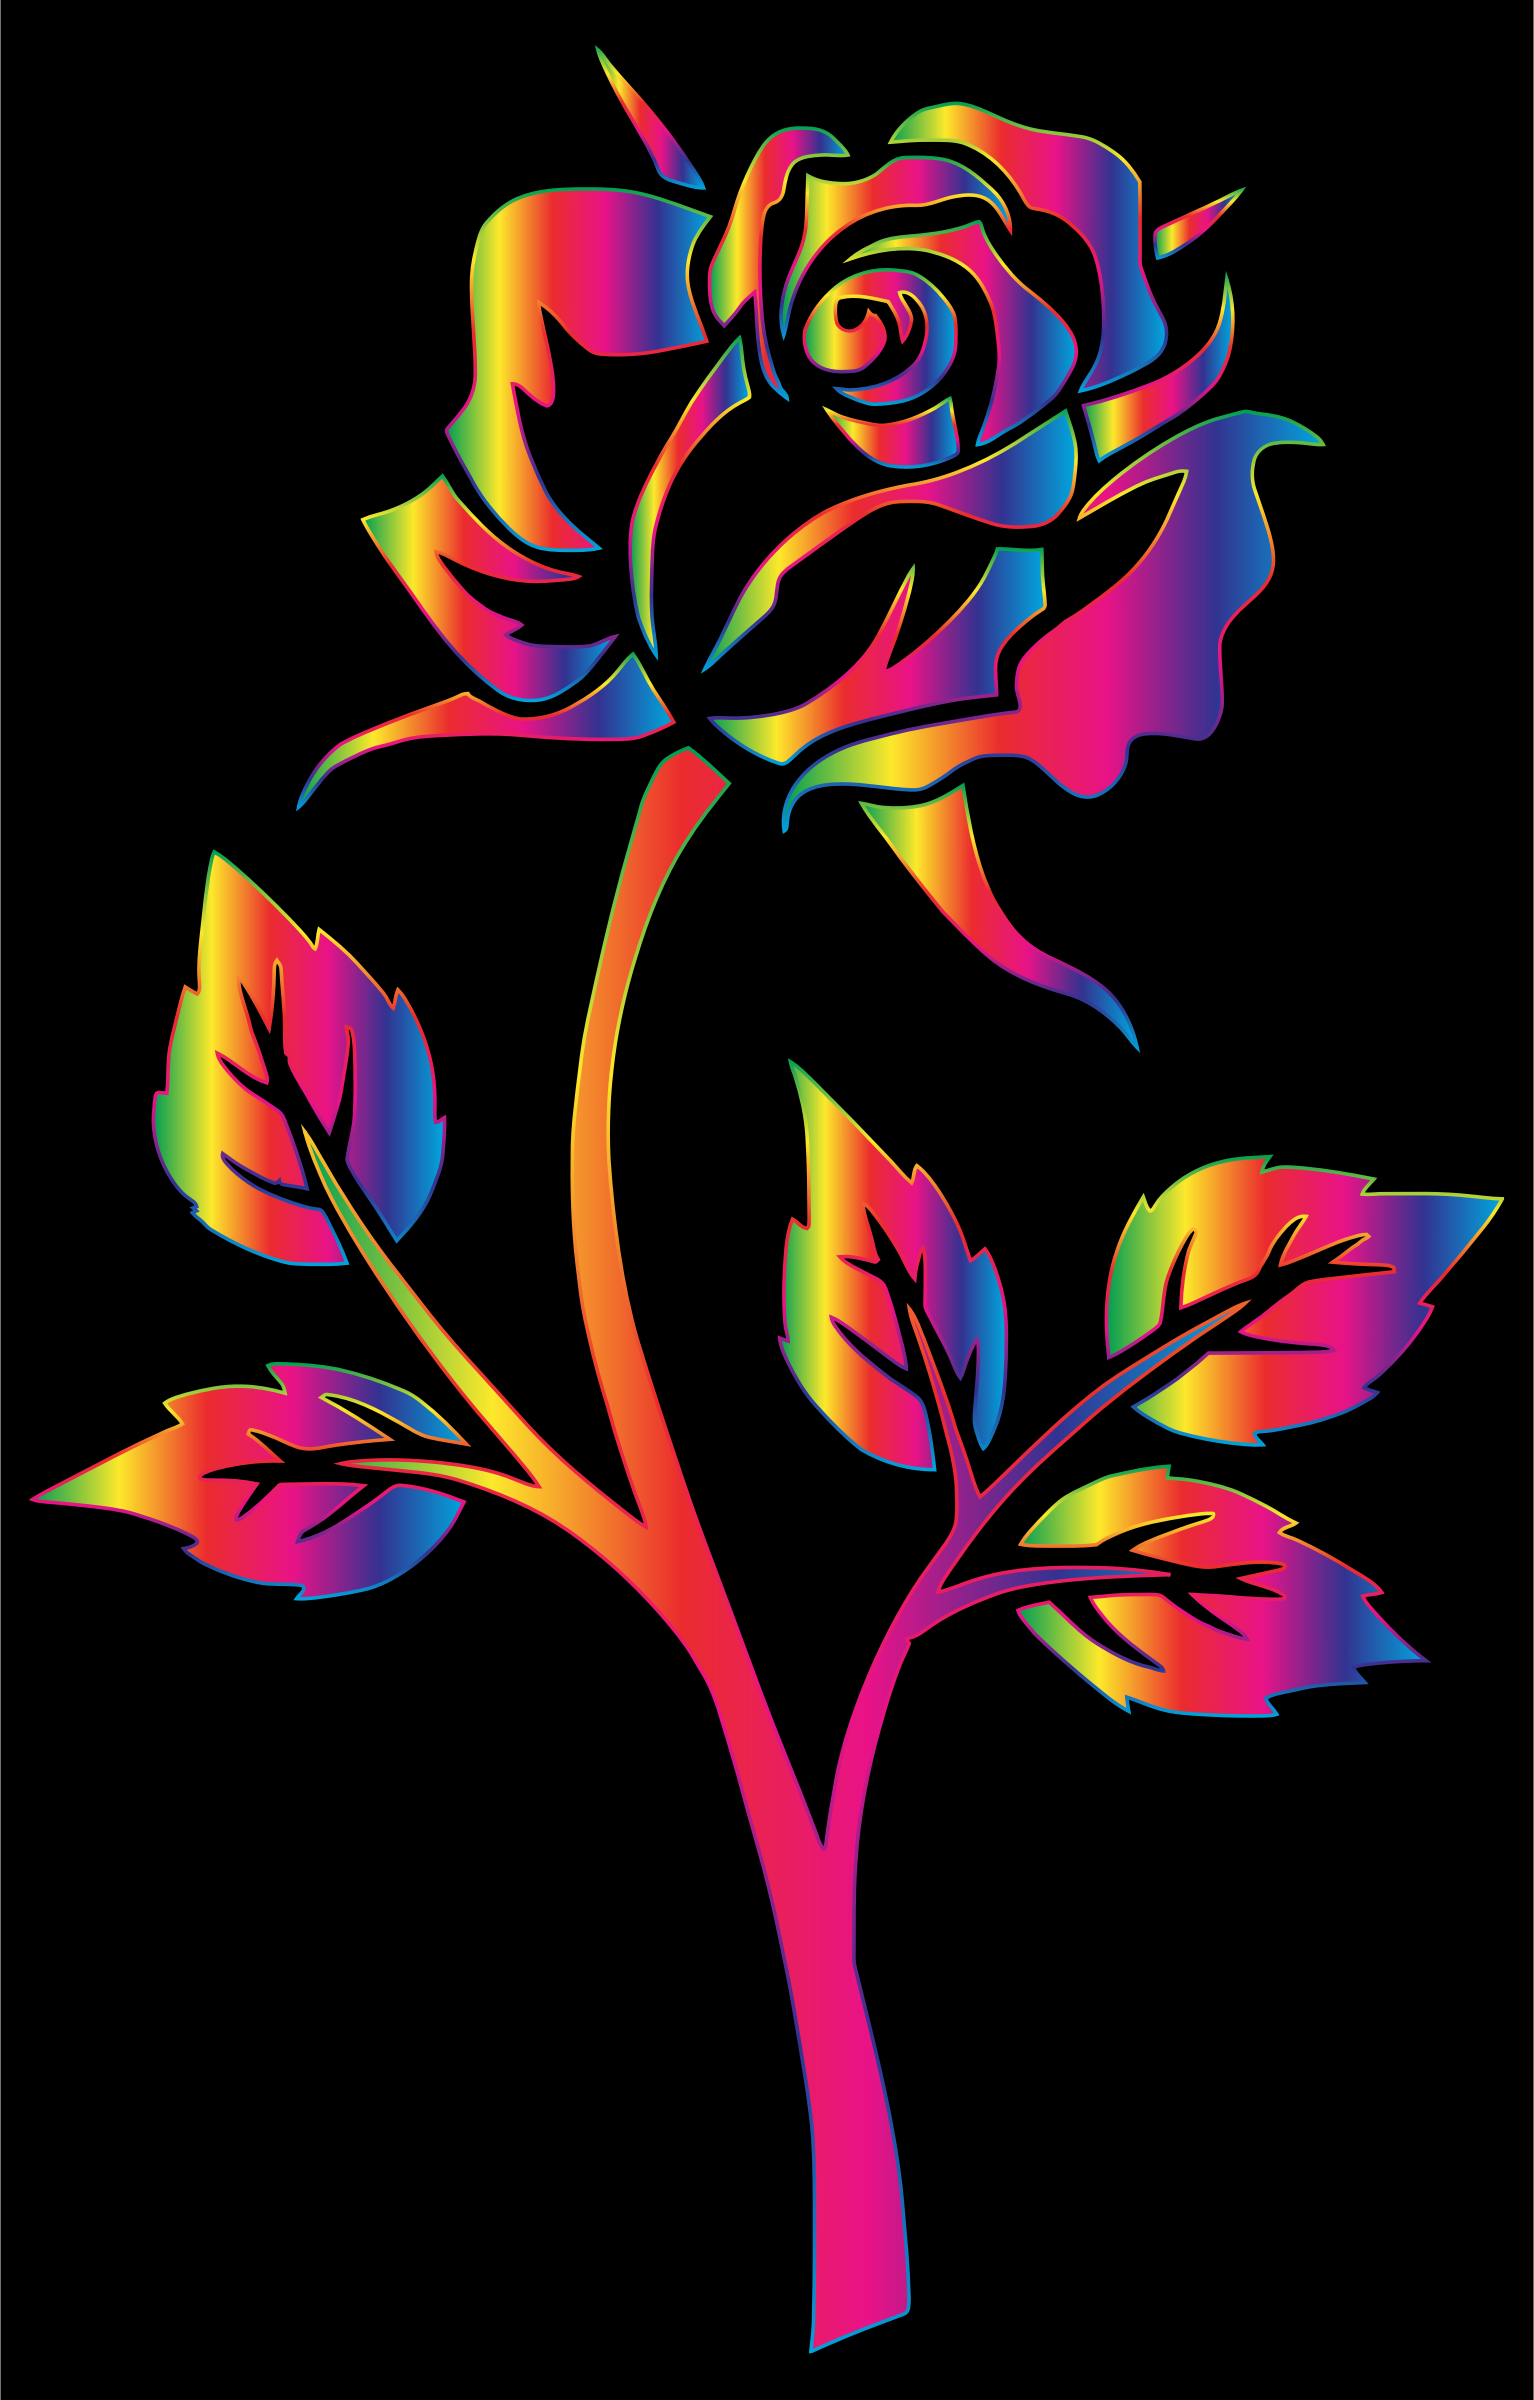 Chromatic Rose Silhouette 4 by GDJ